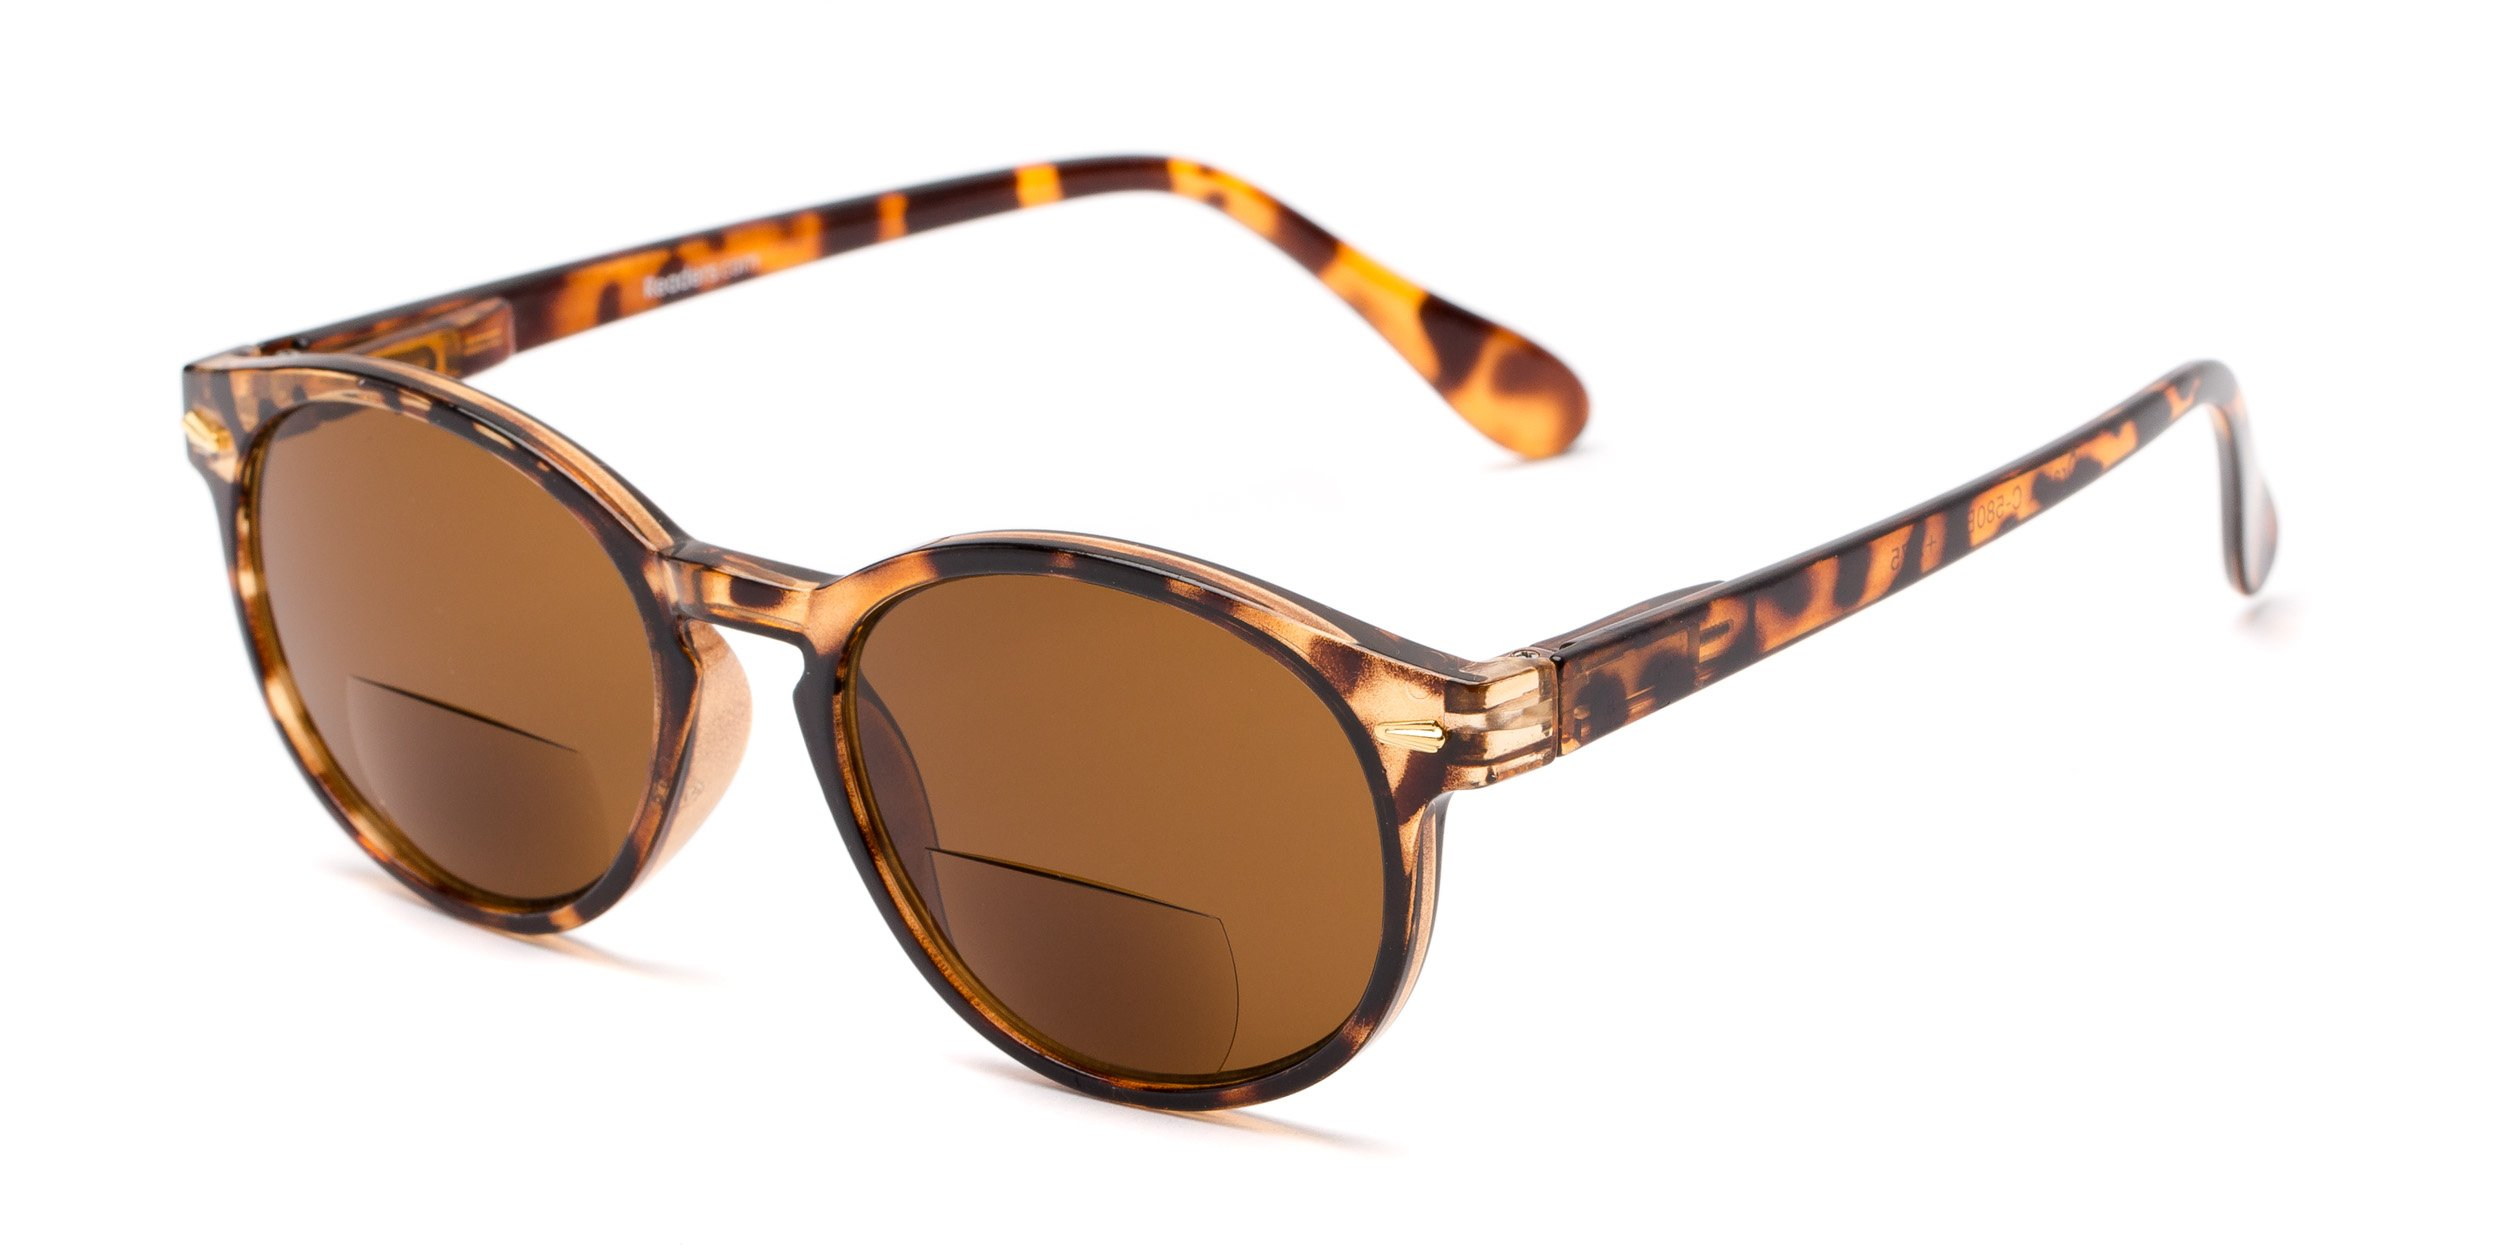 Readers.com Reading Sunglasses: The Drama Bifocal Reading Sunglasses Plastic Round Style for Men and Women - Dark Tortoise with Amber, 1.25